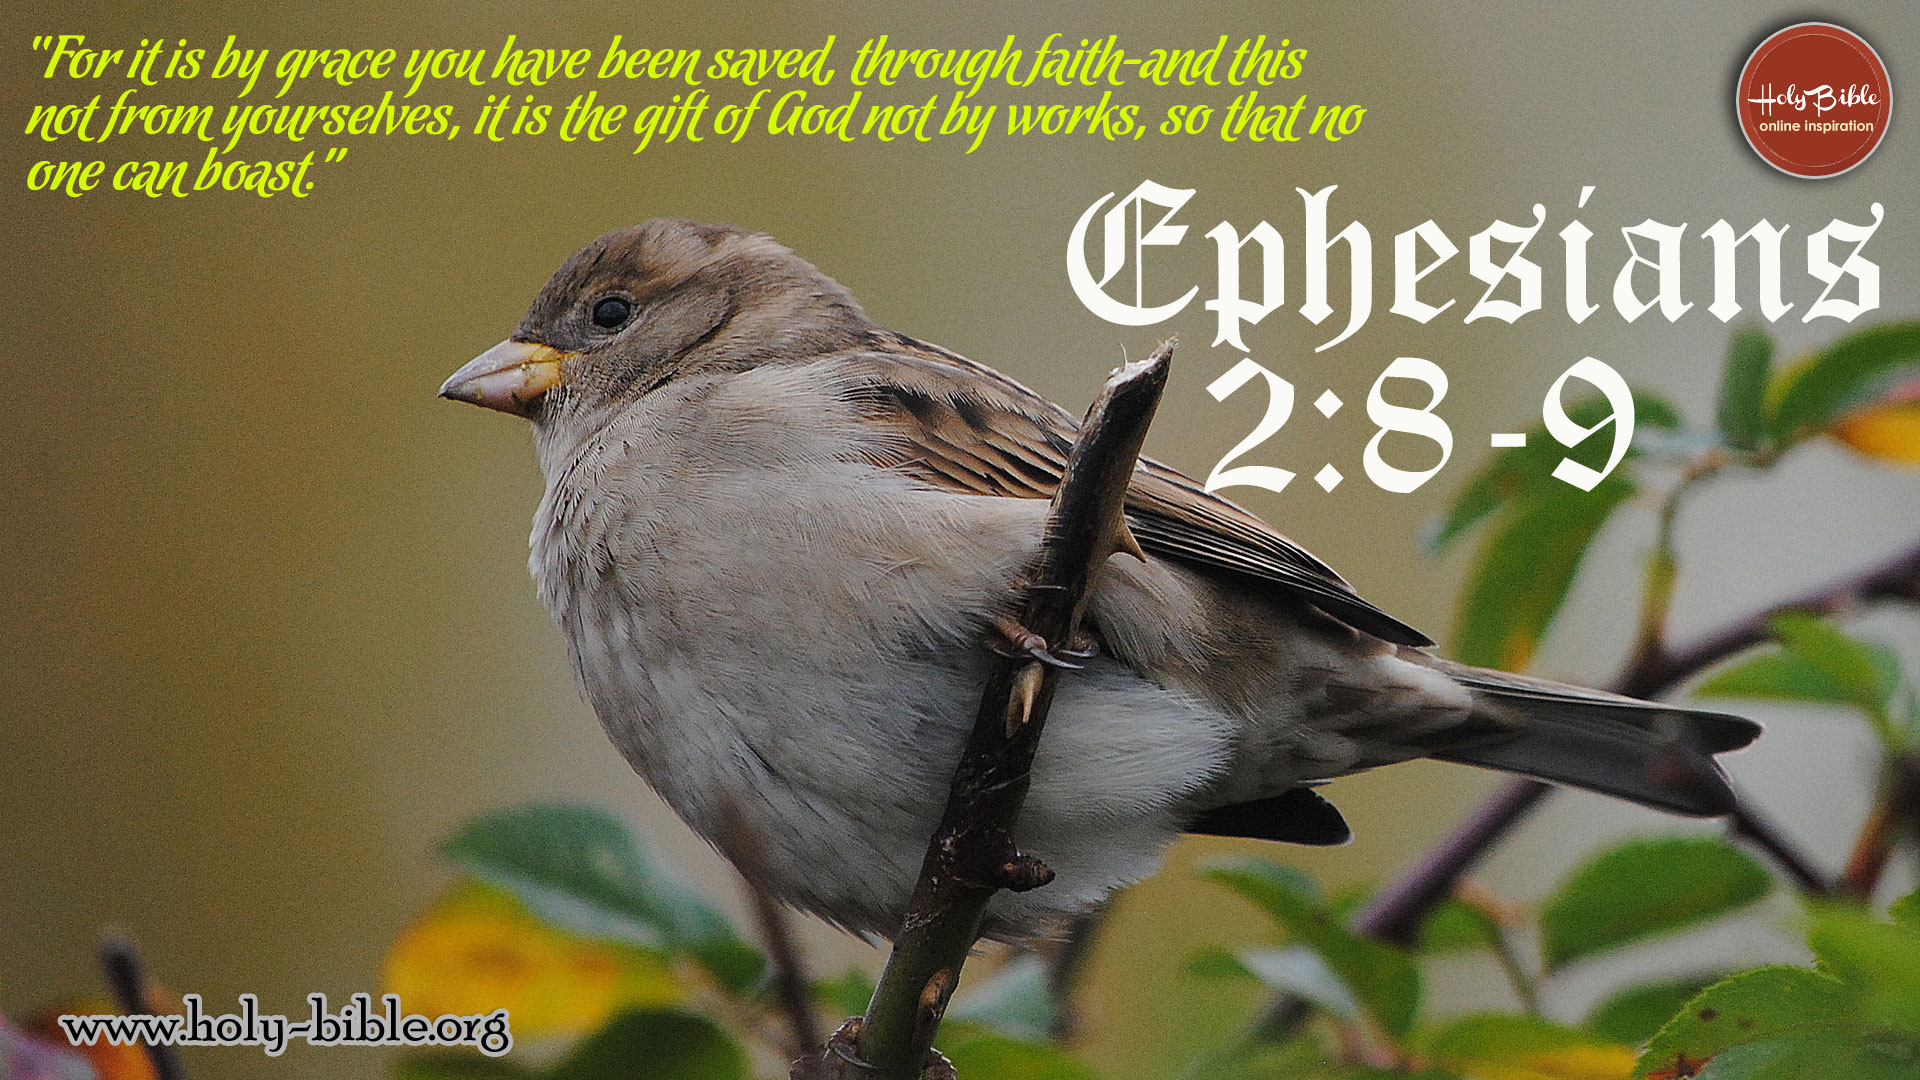 Bible Verse of the day - Ephesians 2:8-9